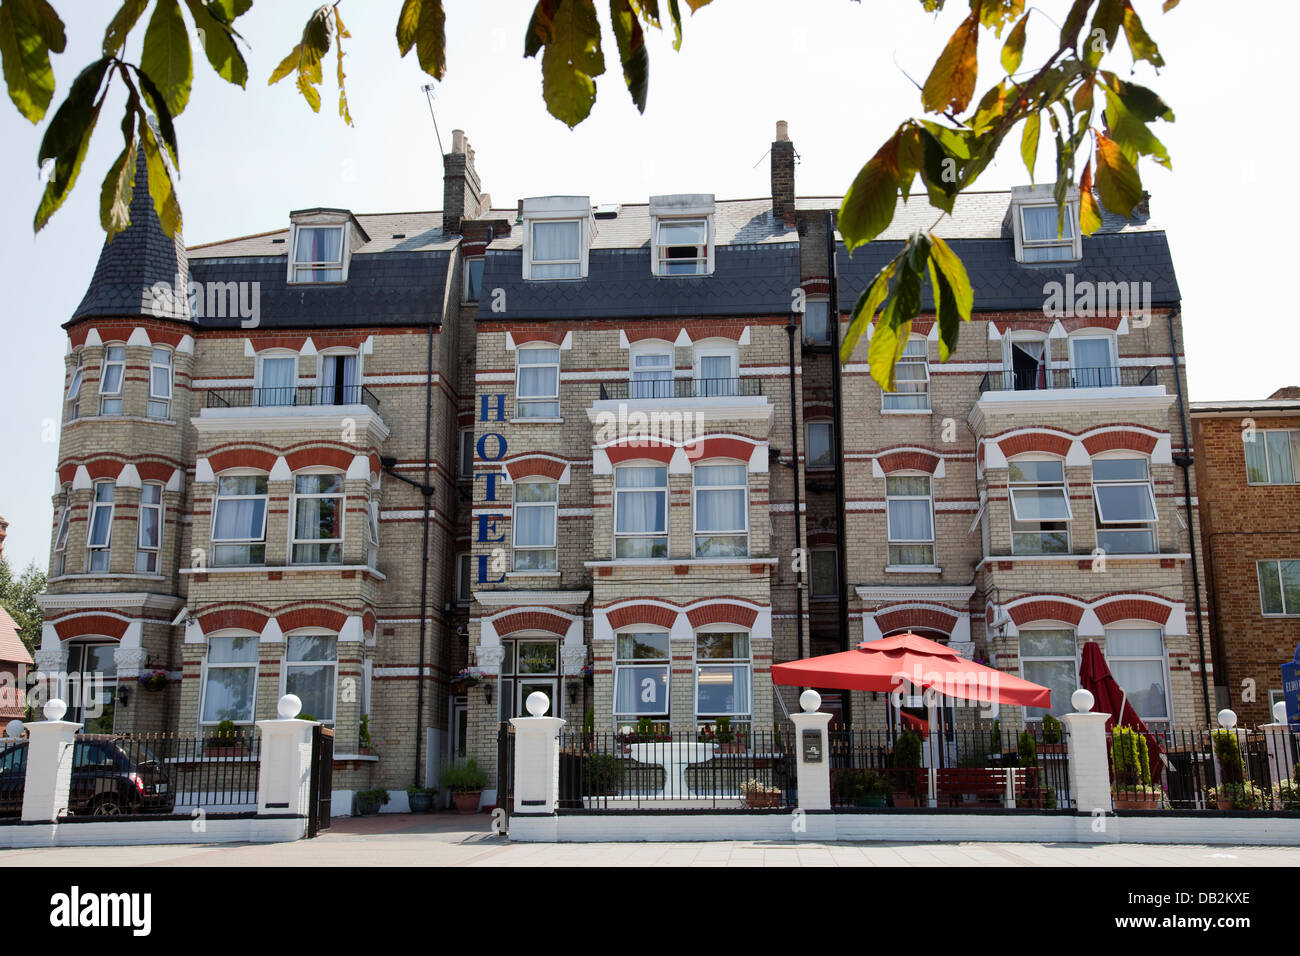 Euro Hotel On Clapham Common Southside In London Sw4 Uk Stock